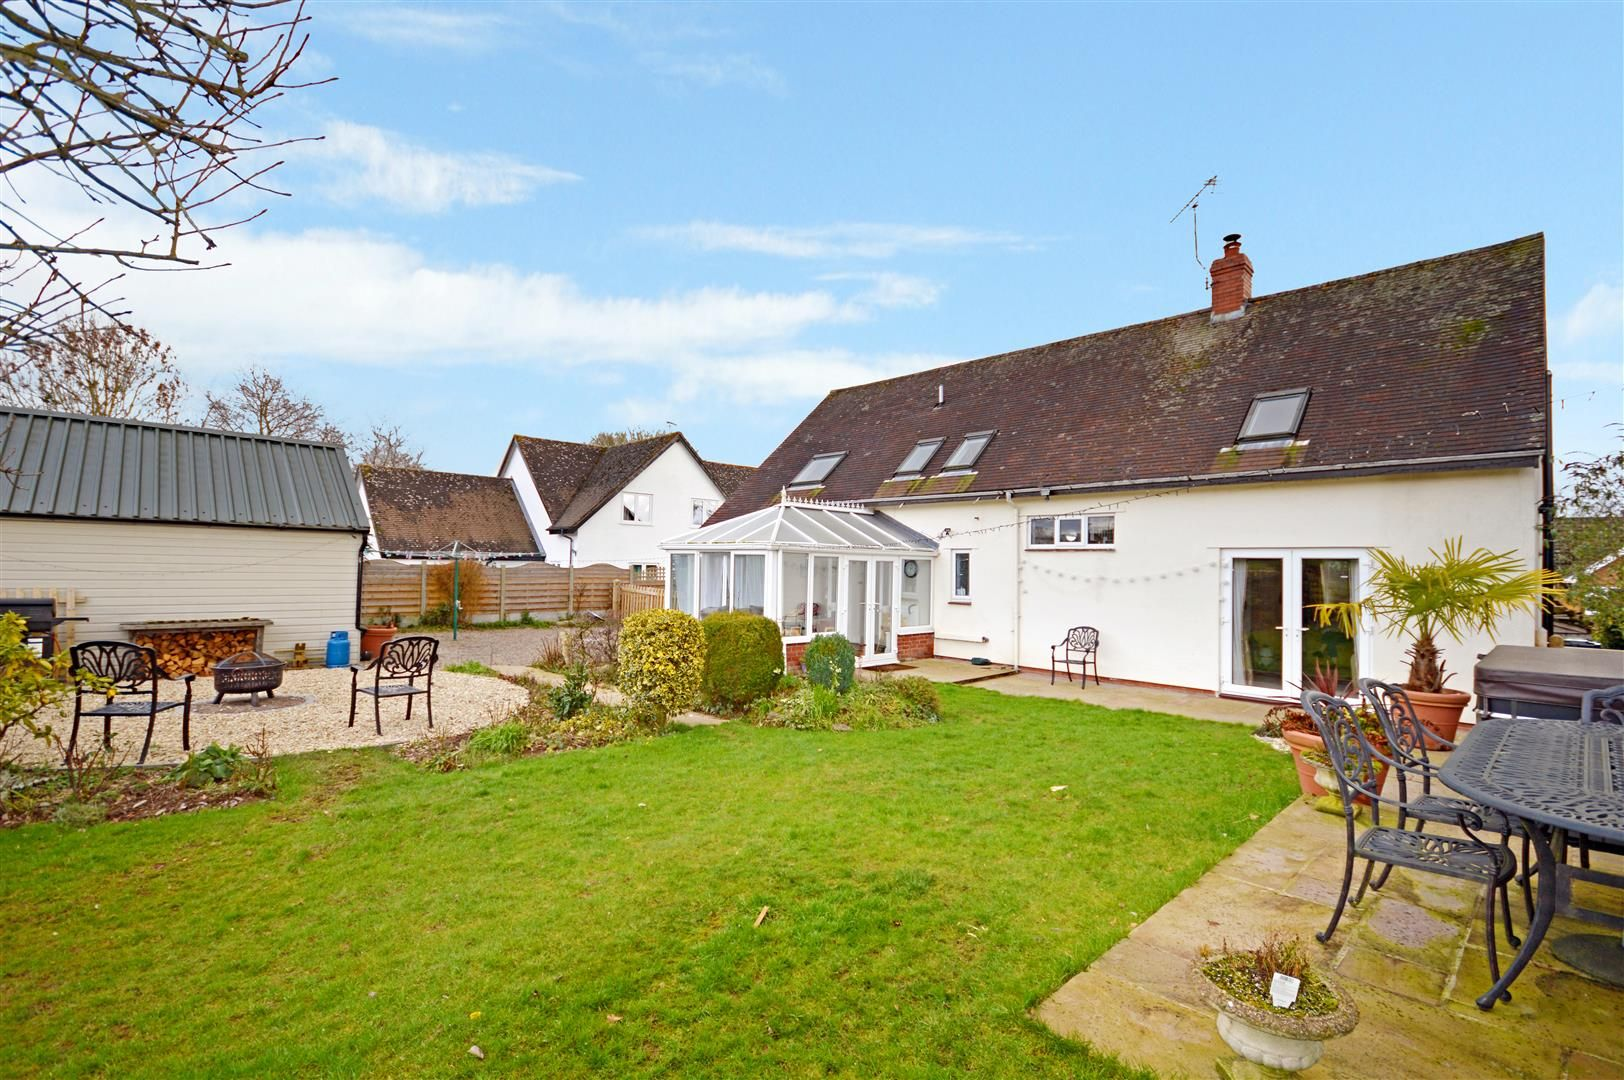 5 bed detached for sale in Eardisley, HR3